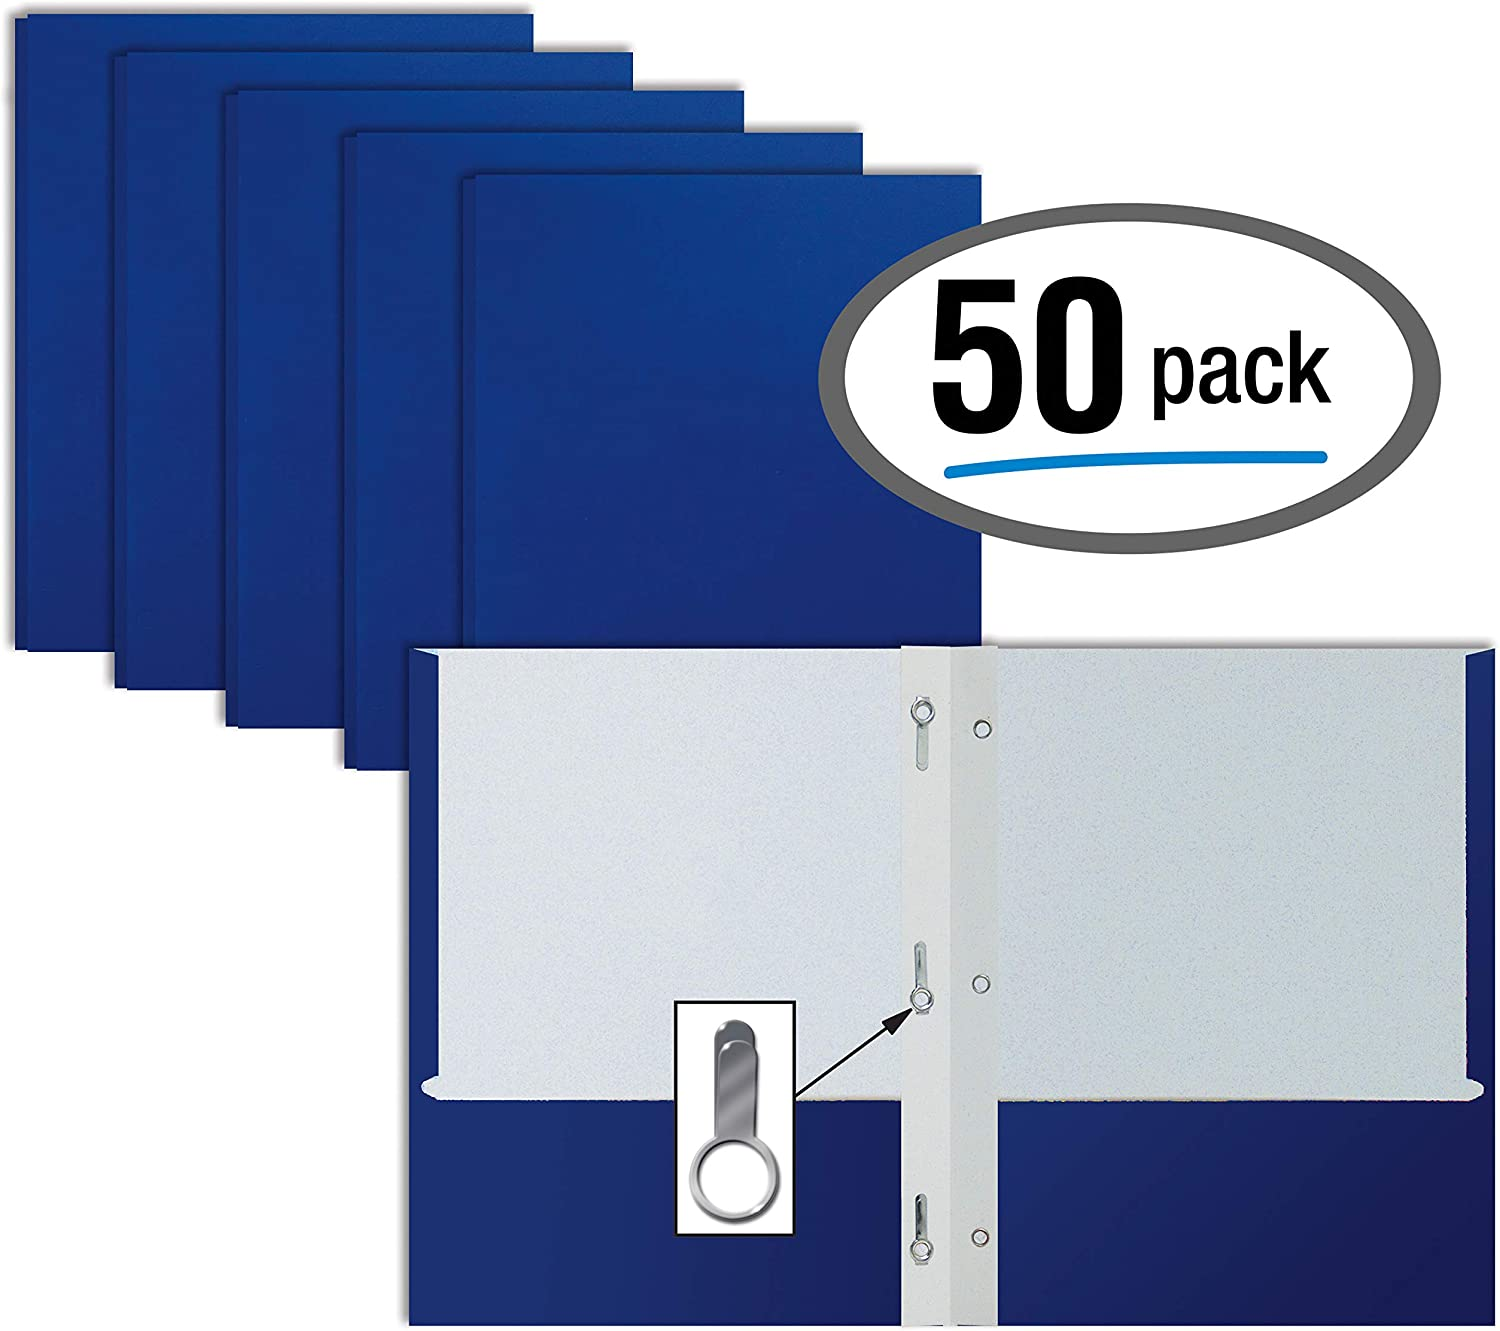 Blue Paper 2 Pocket Folders with Prongs, 50 Pack, by Better Office Products, Matte Texture, Letter Size Paper Folders, 50 Pack, with 3 Metal Prong Fastener Clips, Blue